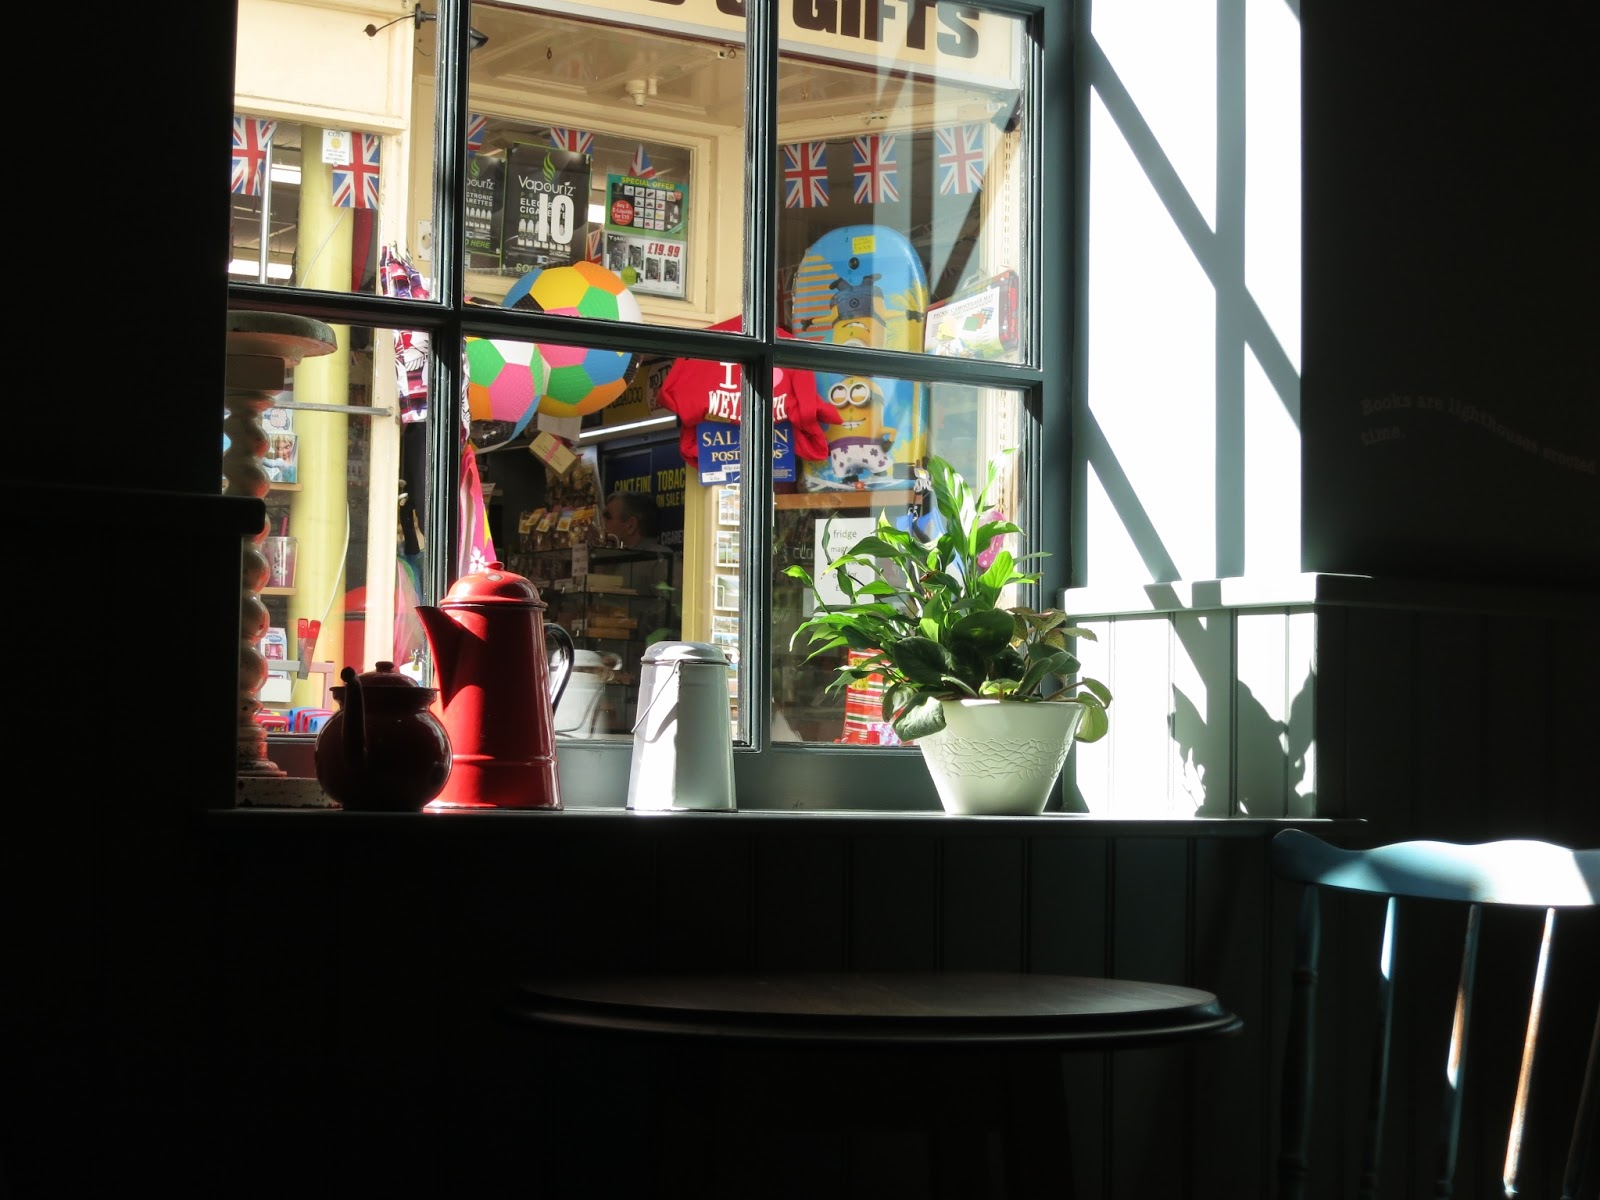 Looking out through cafe window into gift shop opposite.